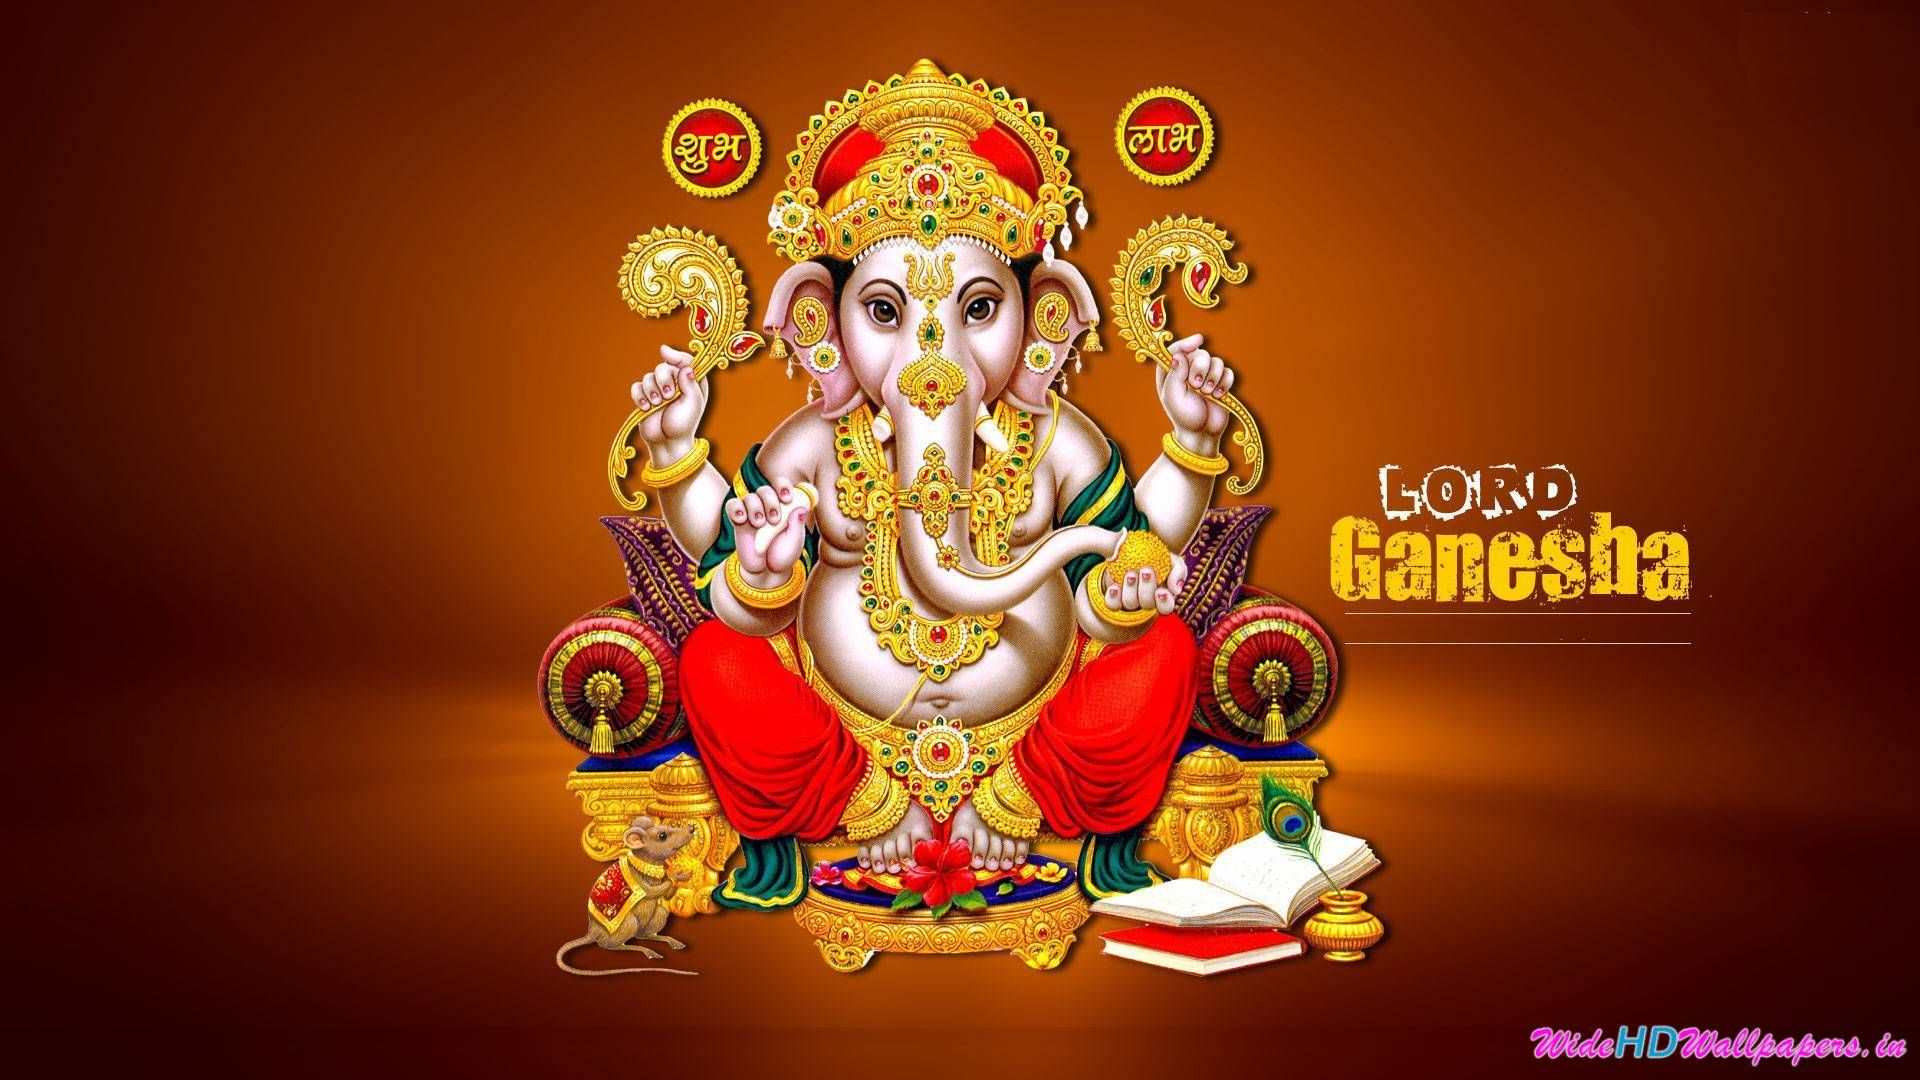 ravishment lord ganesha ganesh chaturthi hd wallpapers free best games wallpapers pinterest ganesh lord ganesha and ganesha